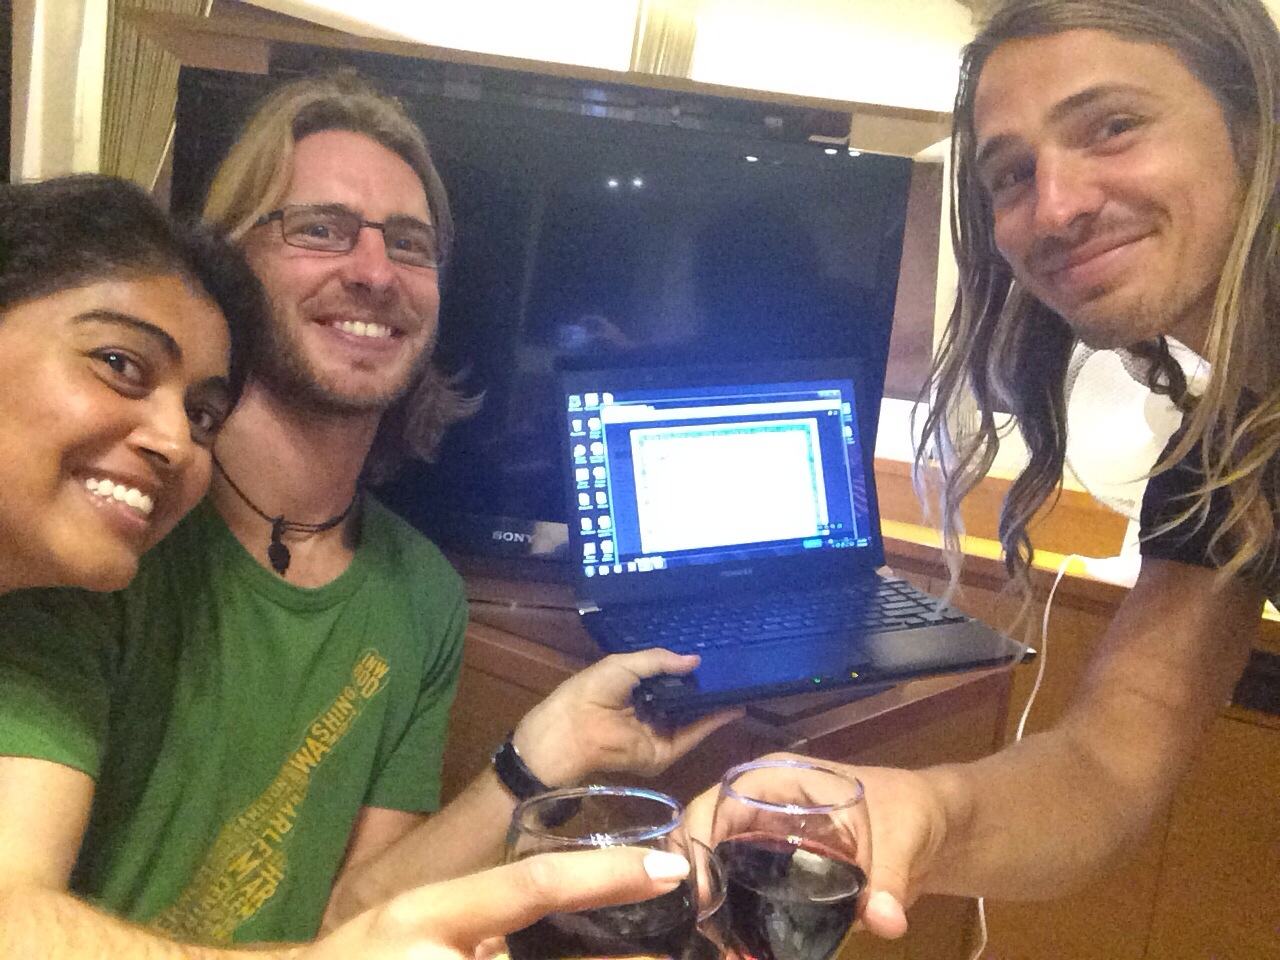 Me, My Captain, the soft copy of our paperwork, and the First Mate, celebrating with some Malbec, brie and hummus!